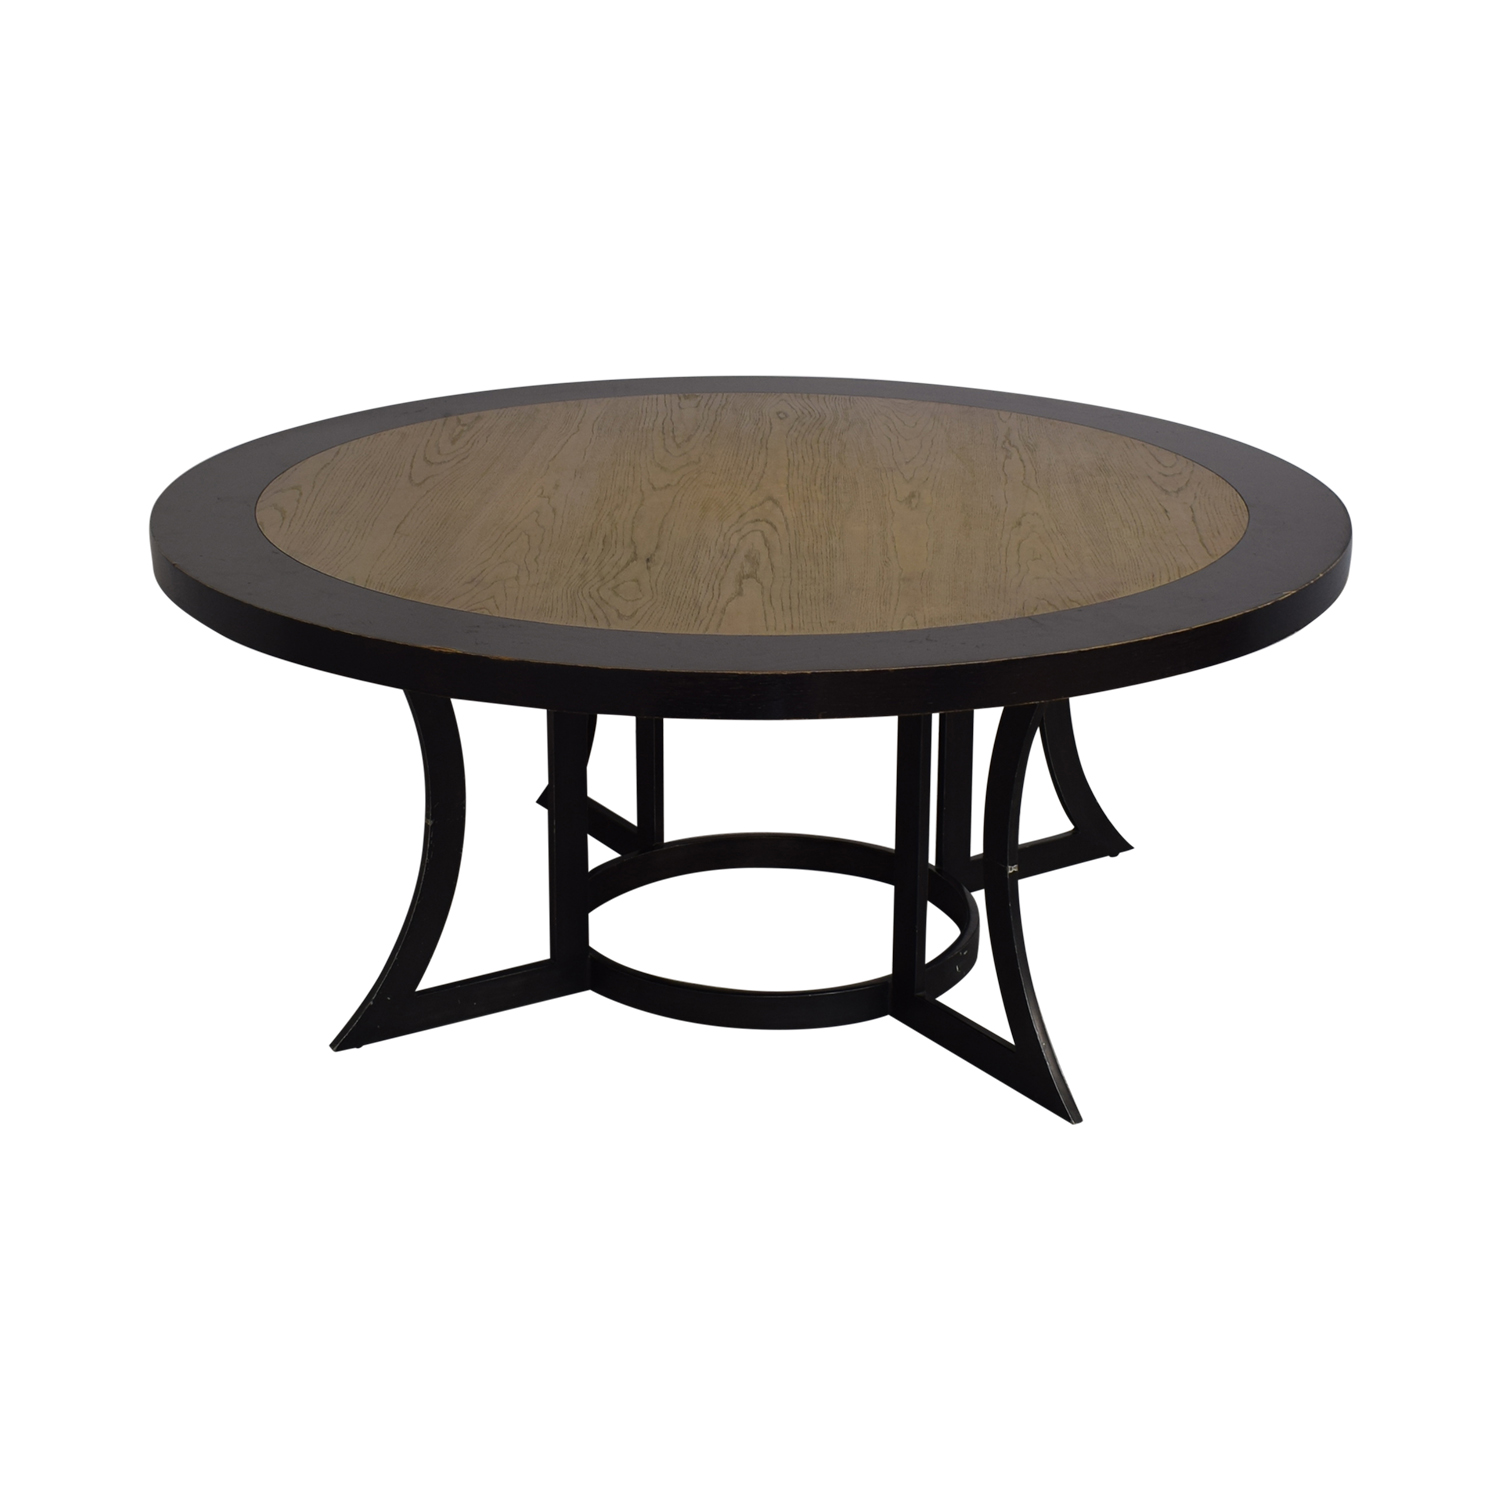 Thom Filicia Dining Table Thom Filicia